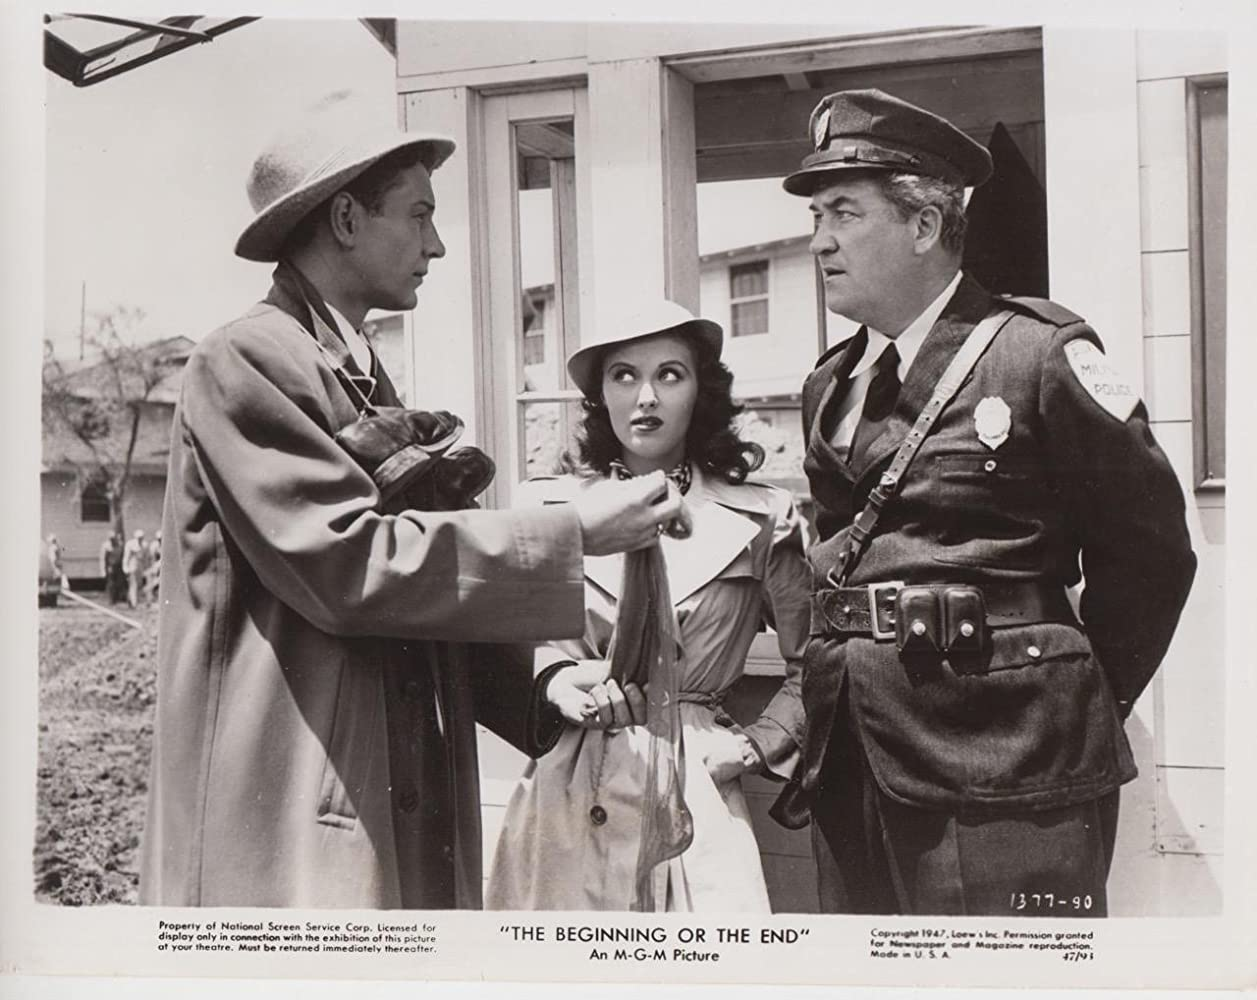 Tom Drake, Ralph Dunn, and Beverly Tyler in The Beginning or the End (1947)